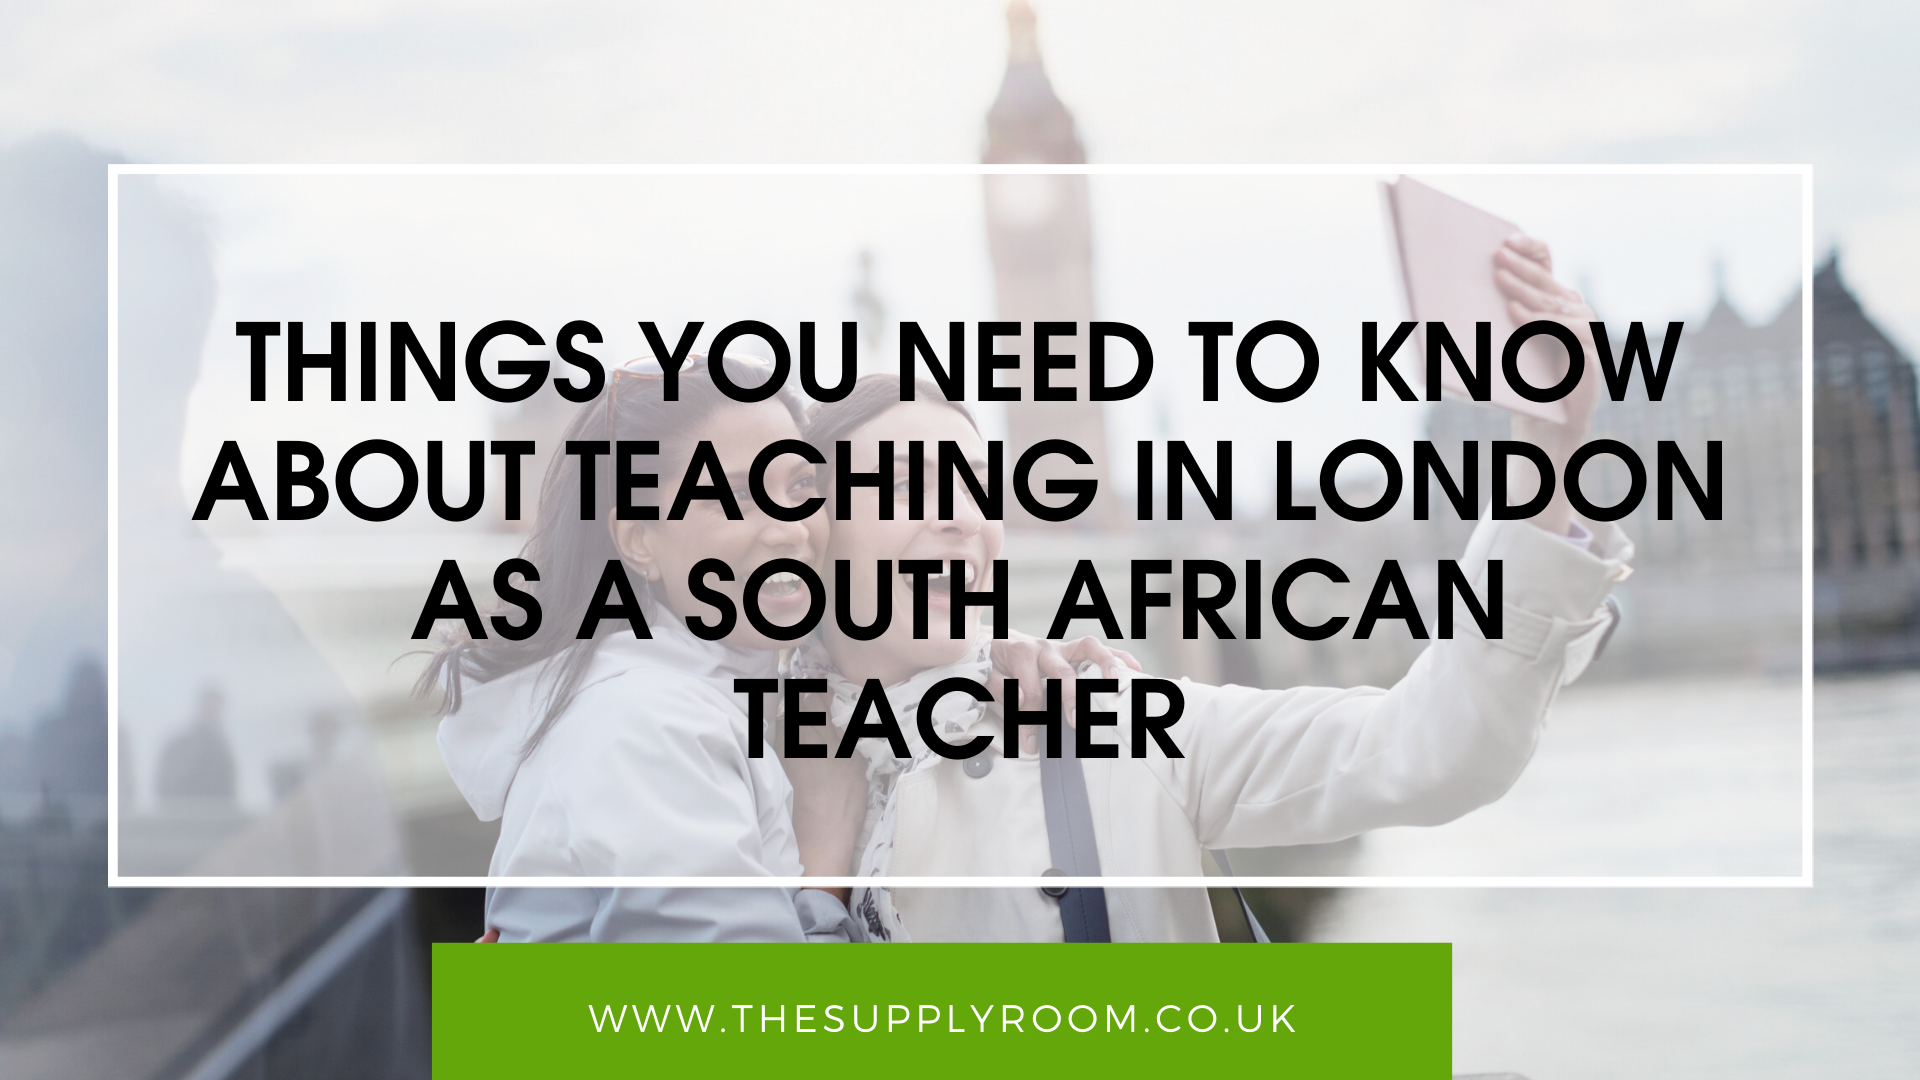 Teaching in London as a South African Teacher